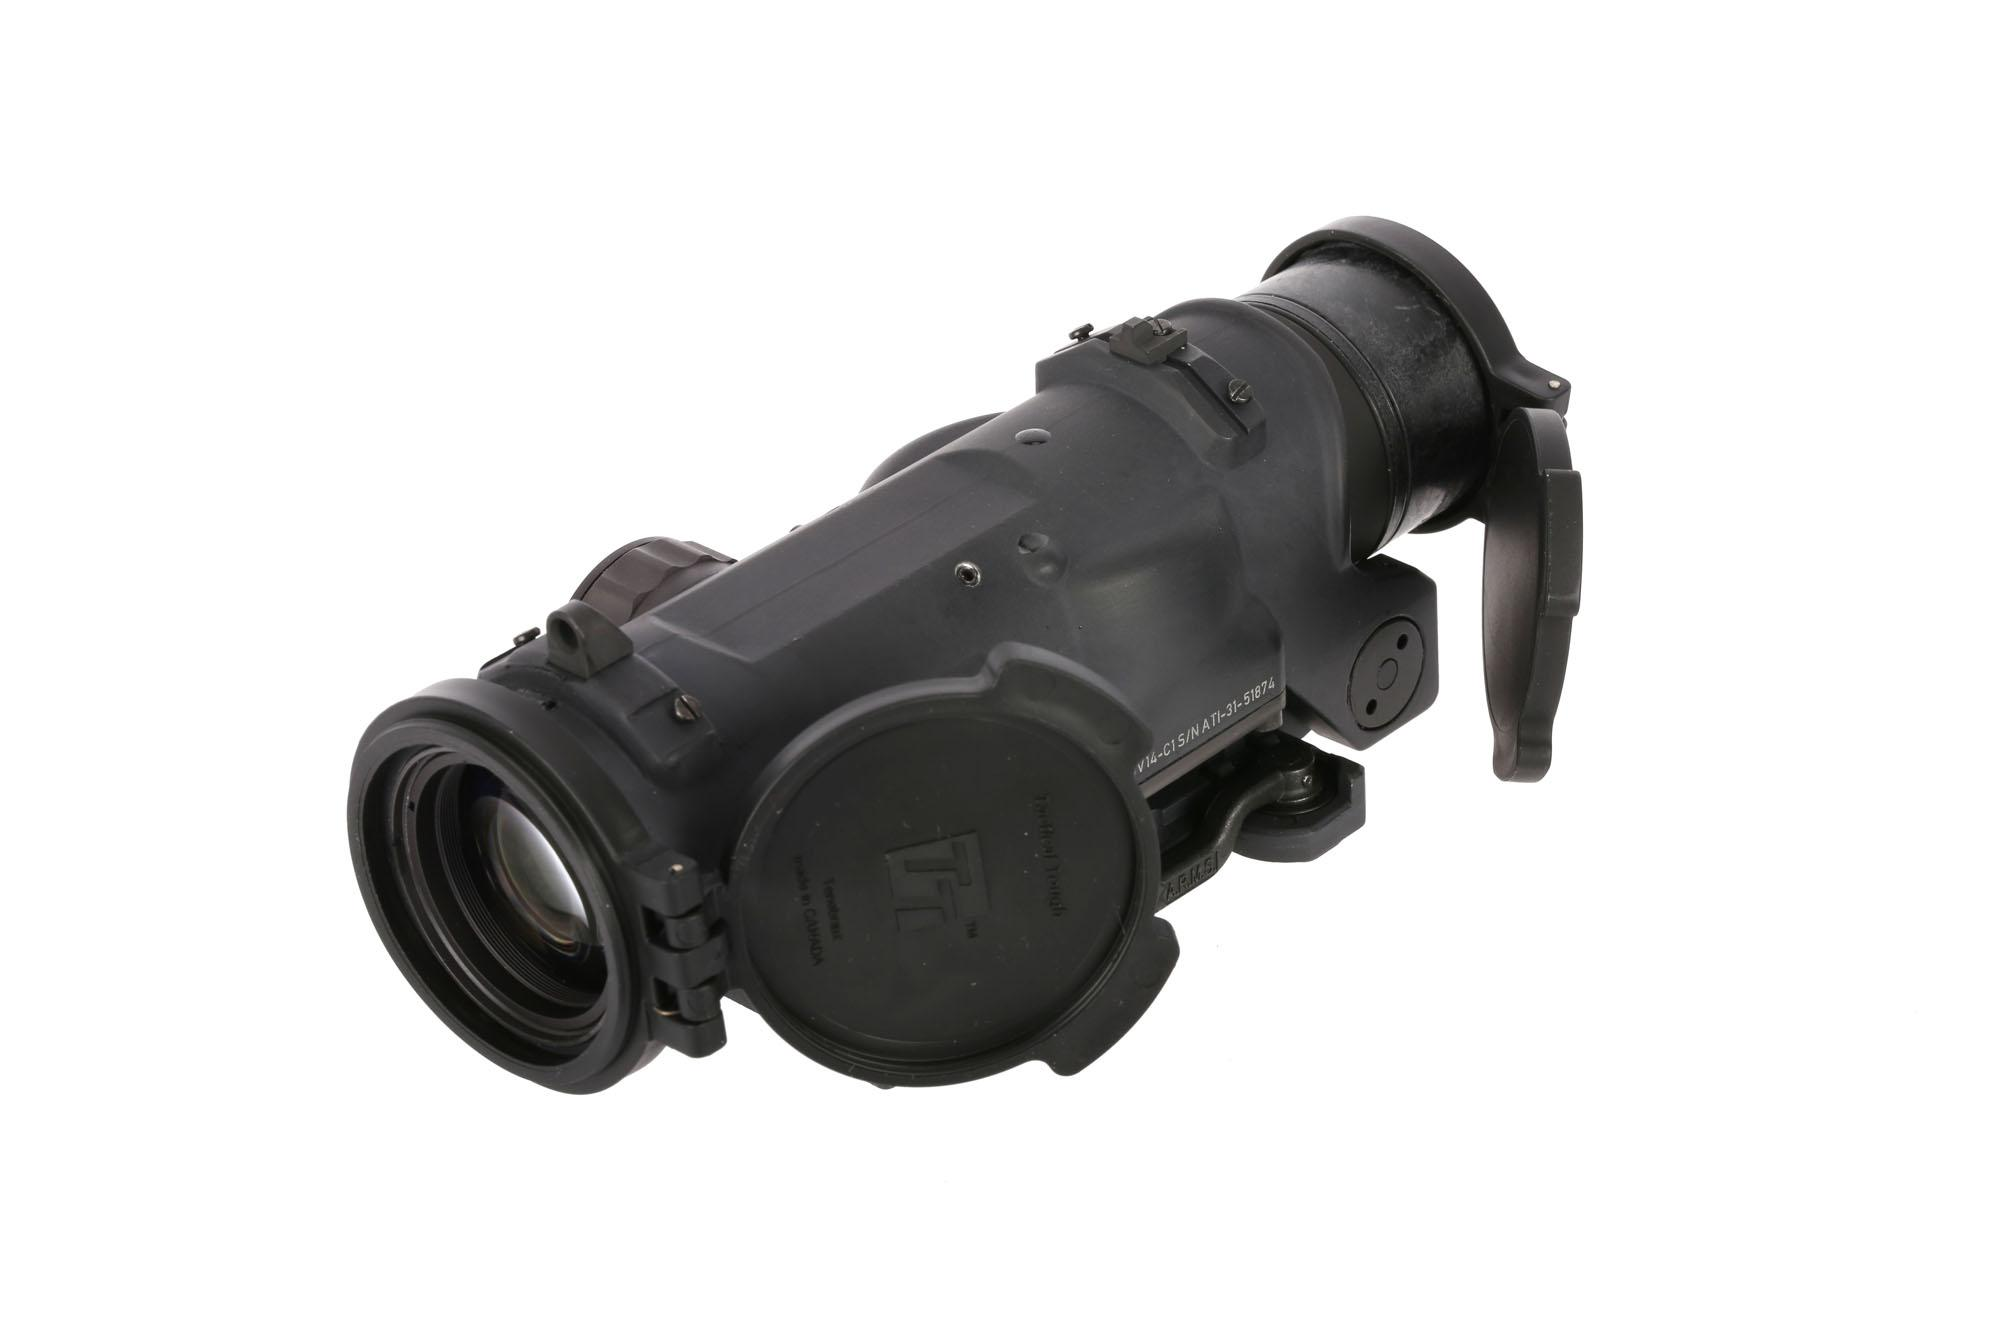 ELCAN SpecterDR Dual Role 1x/4x 5.56 Optical Sight - Black